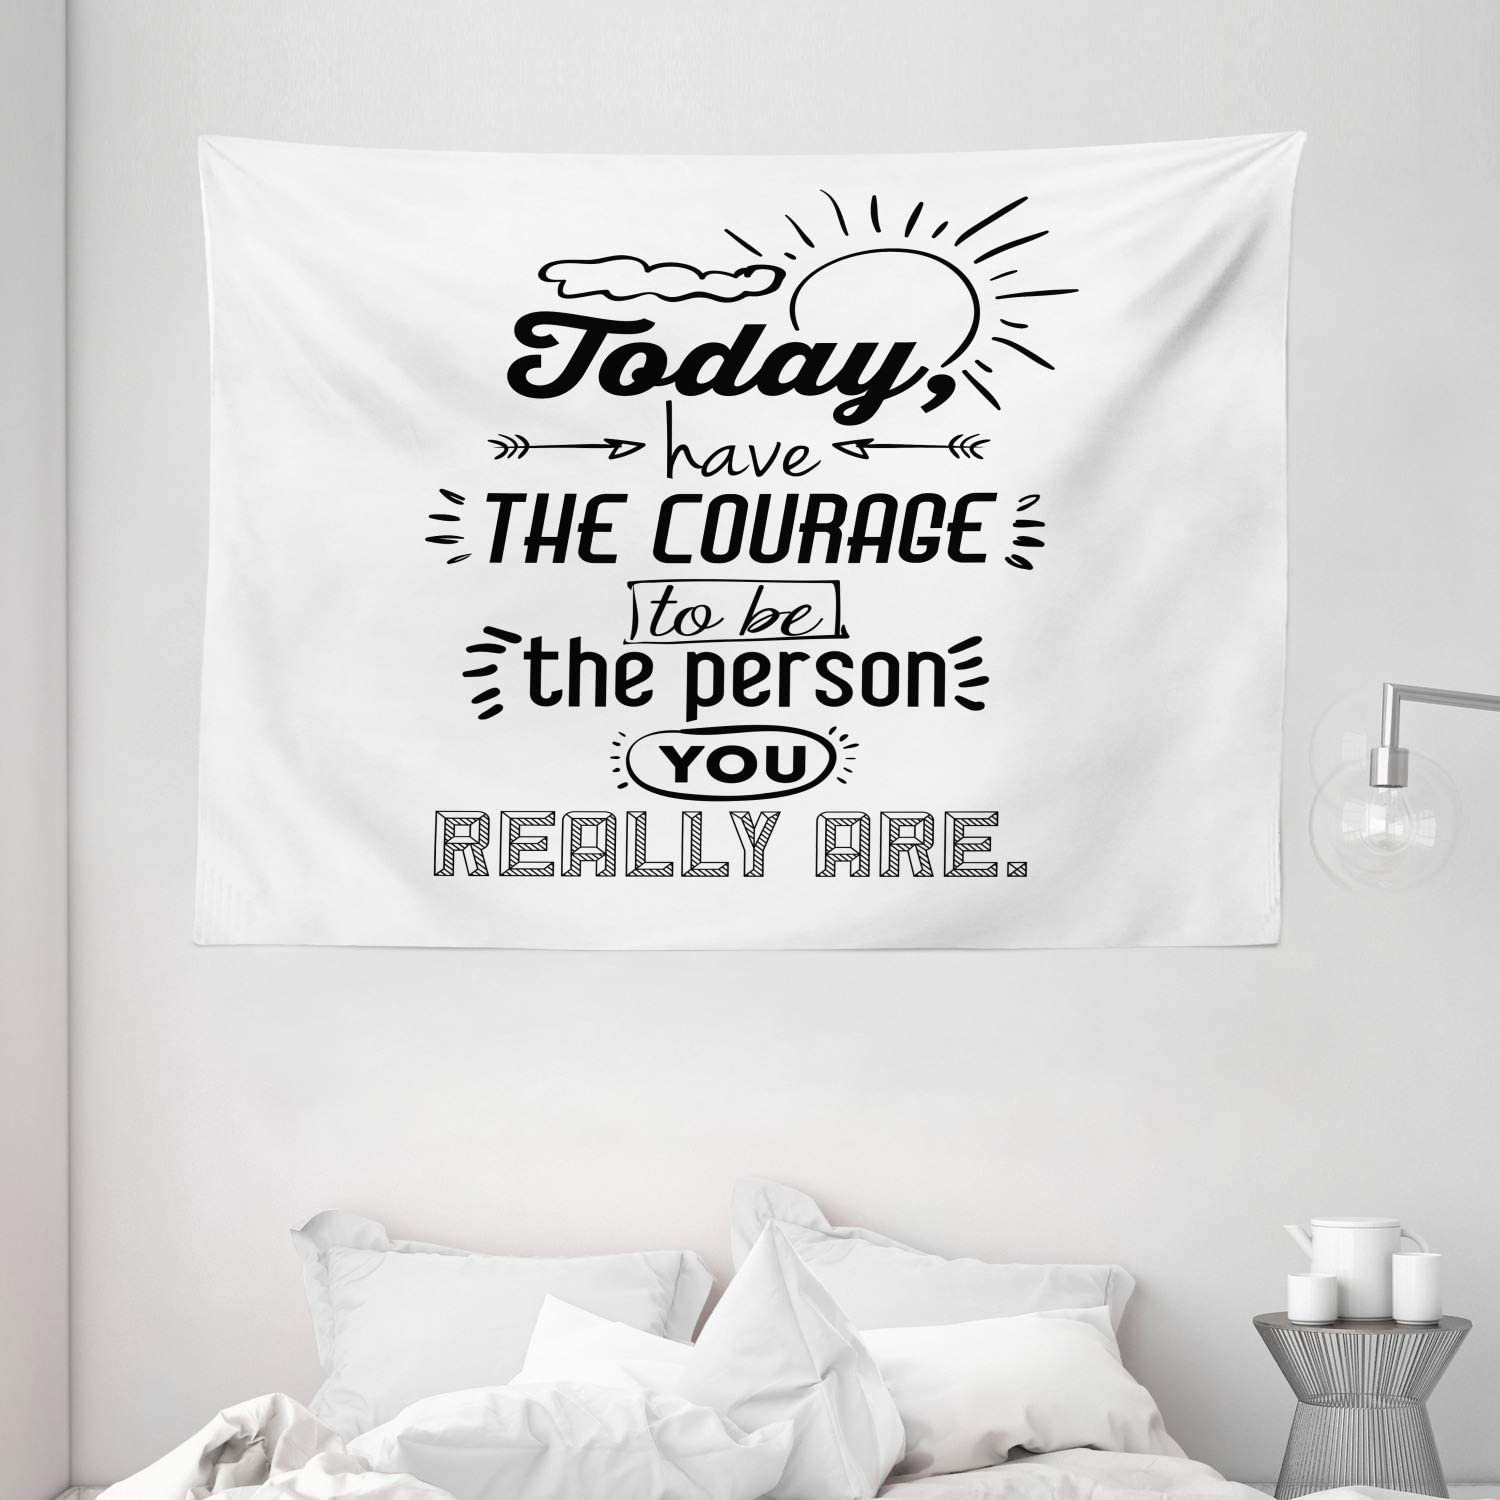 Motivational Quote Tapestry Wall Hanging Inspirational Sayings Tapestries Decor College Dorm Living Room Art Gift Bedroom Dormitory Bedspread Small Medium Large Printed in the USA